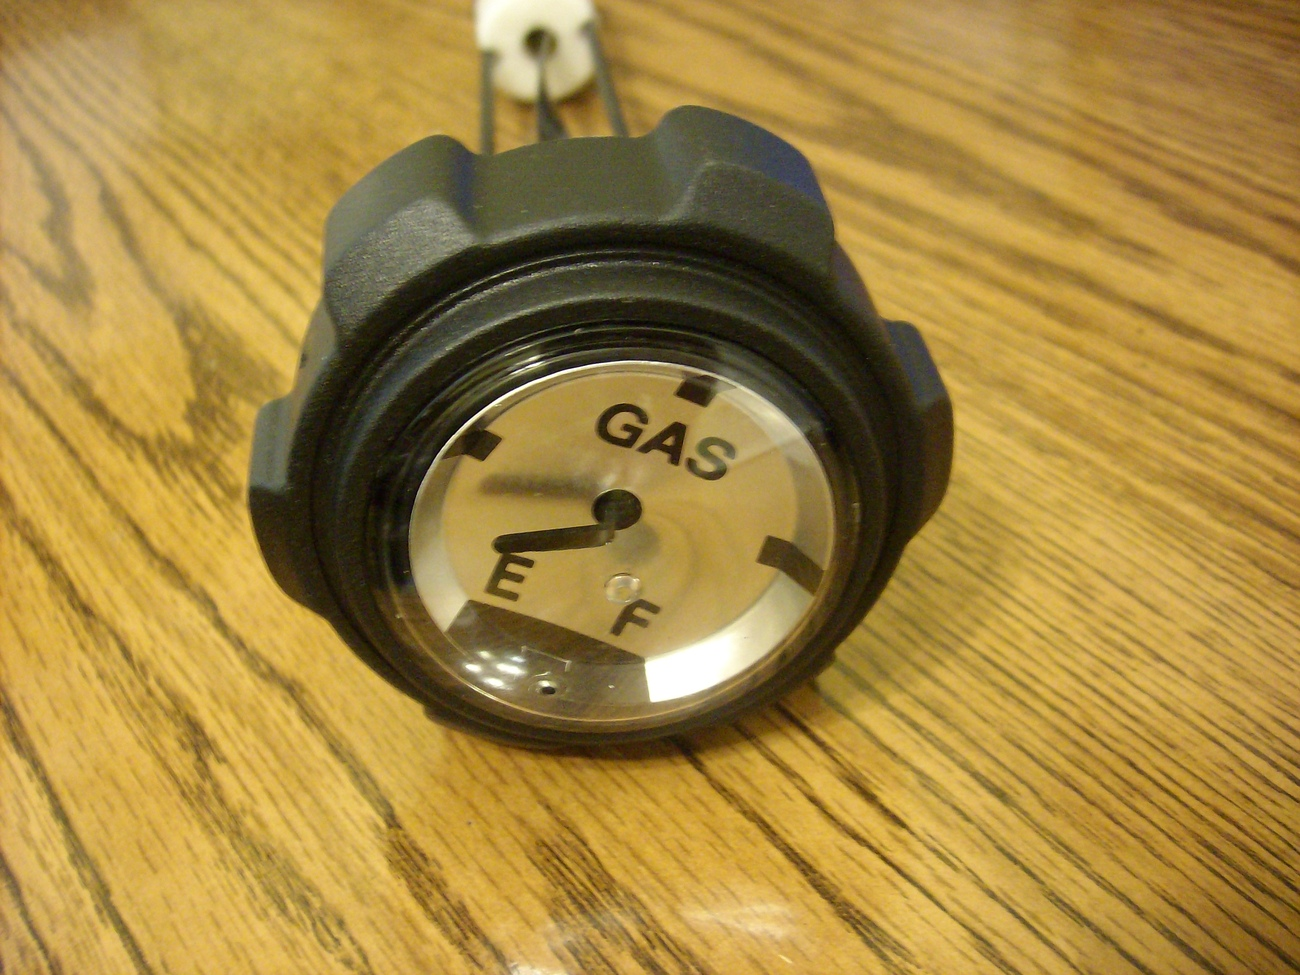 Toro gas cap fuel cap gauge 1-513508